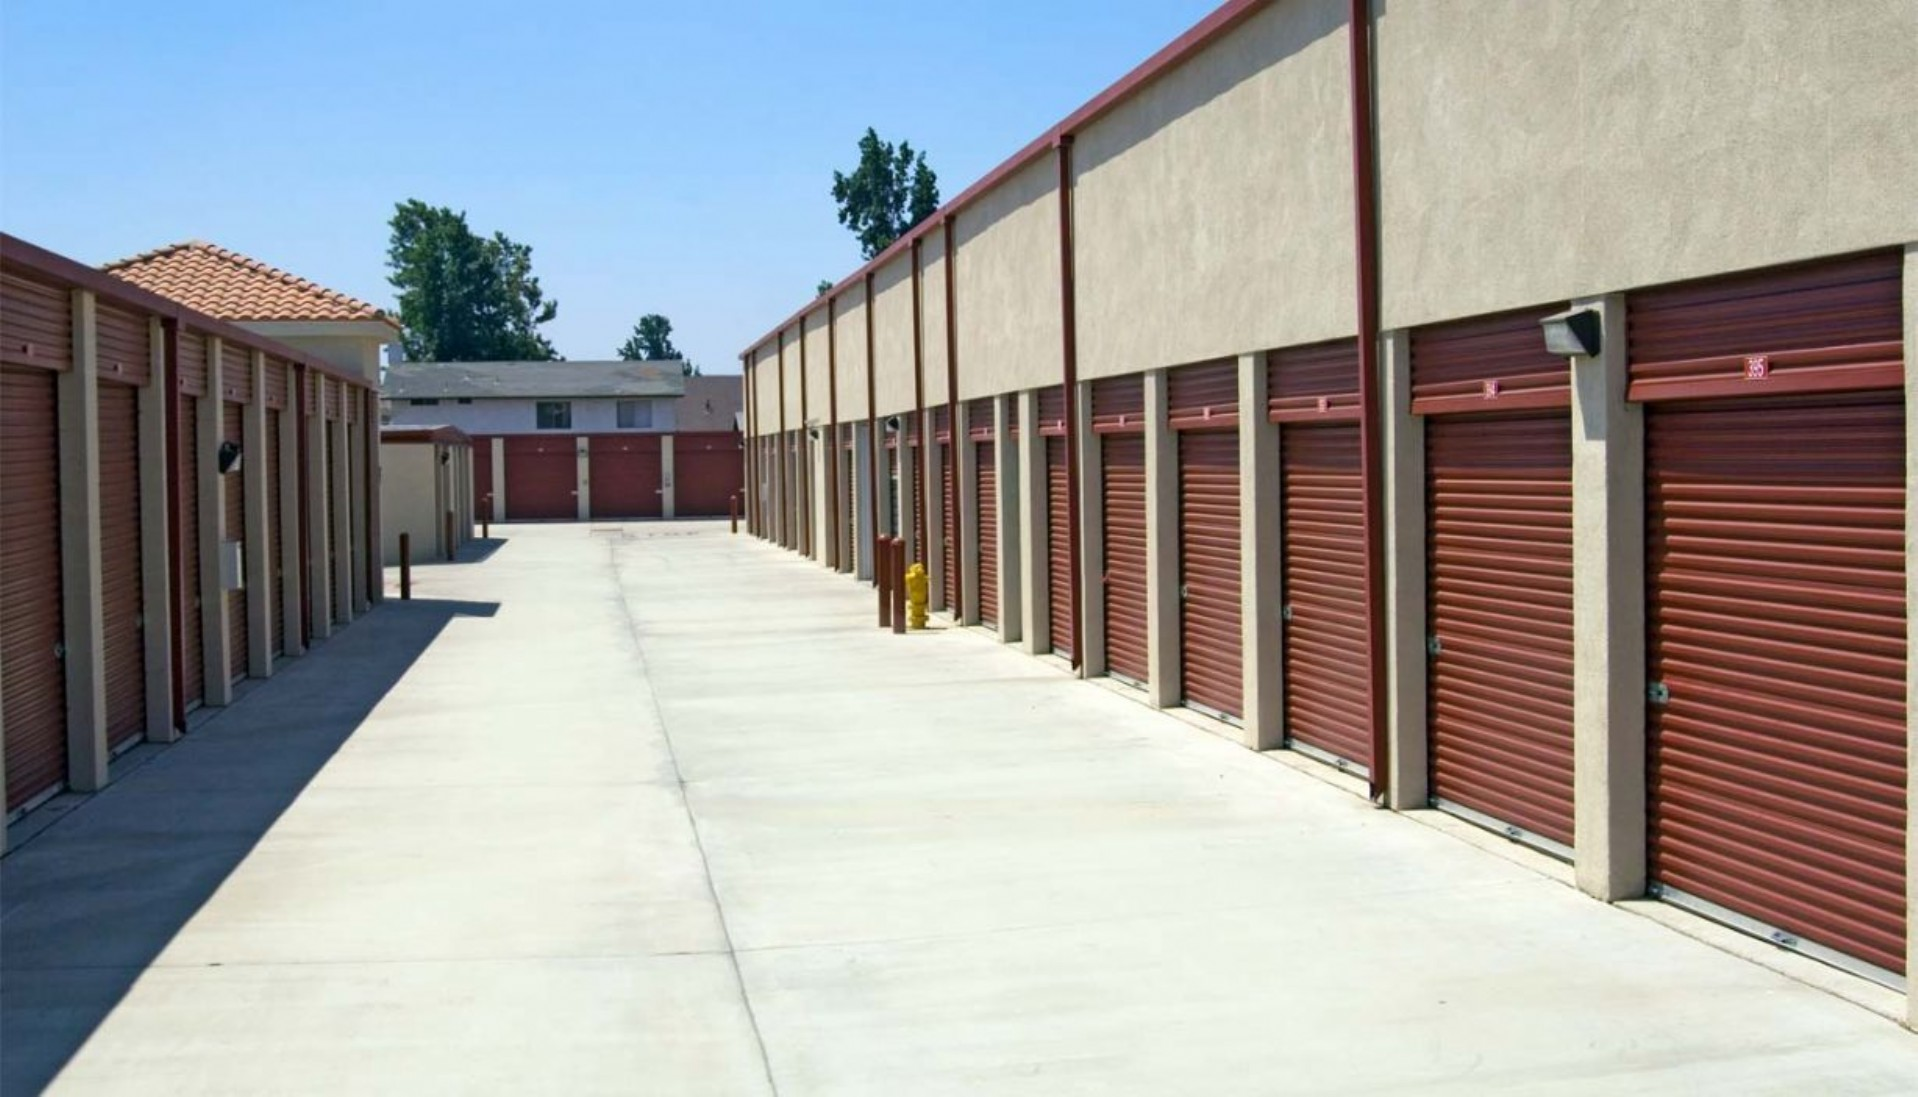 Wide drive aisle to large drive up storage units with roll up doors left, right and center